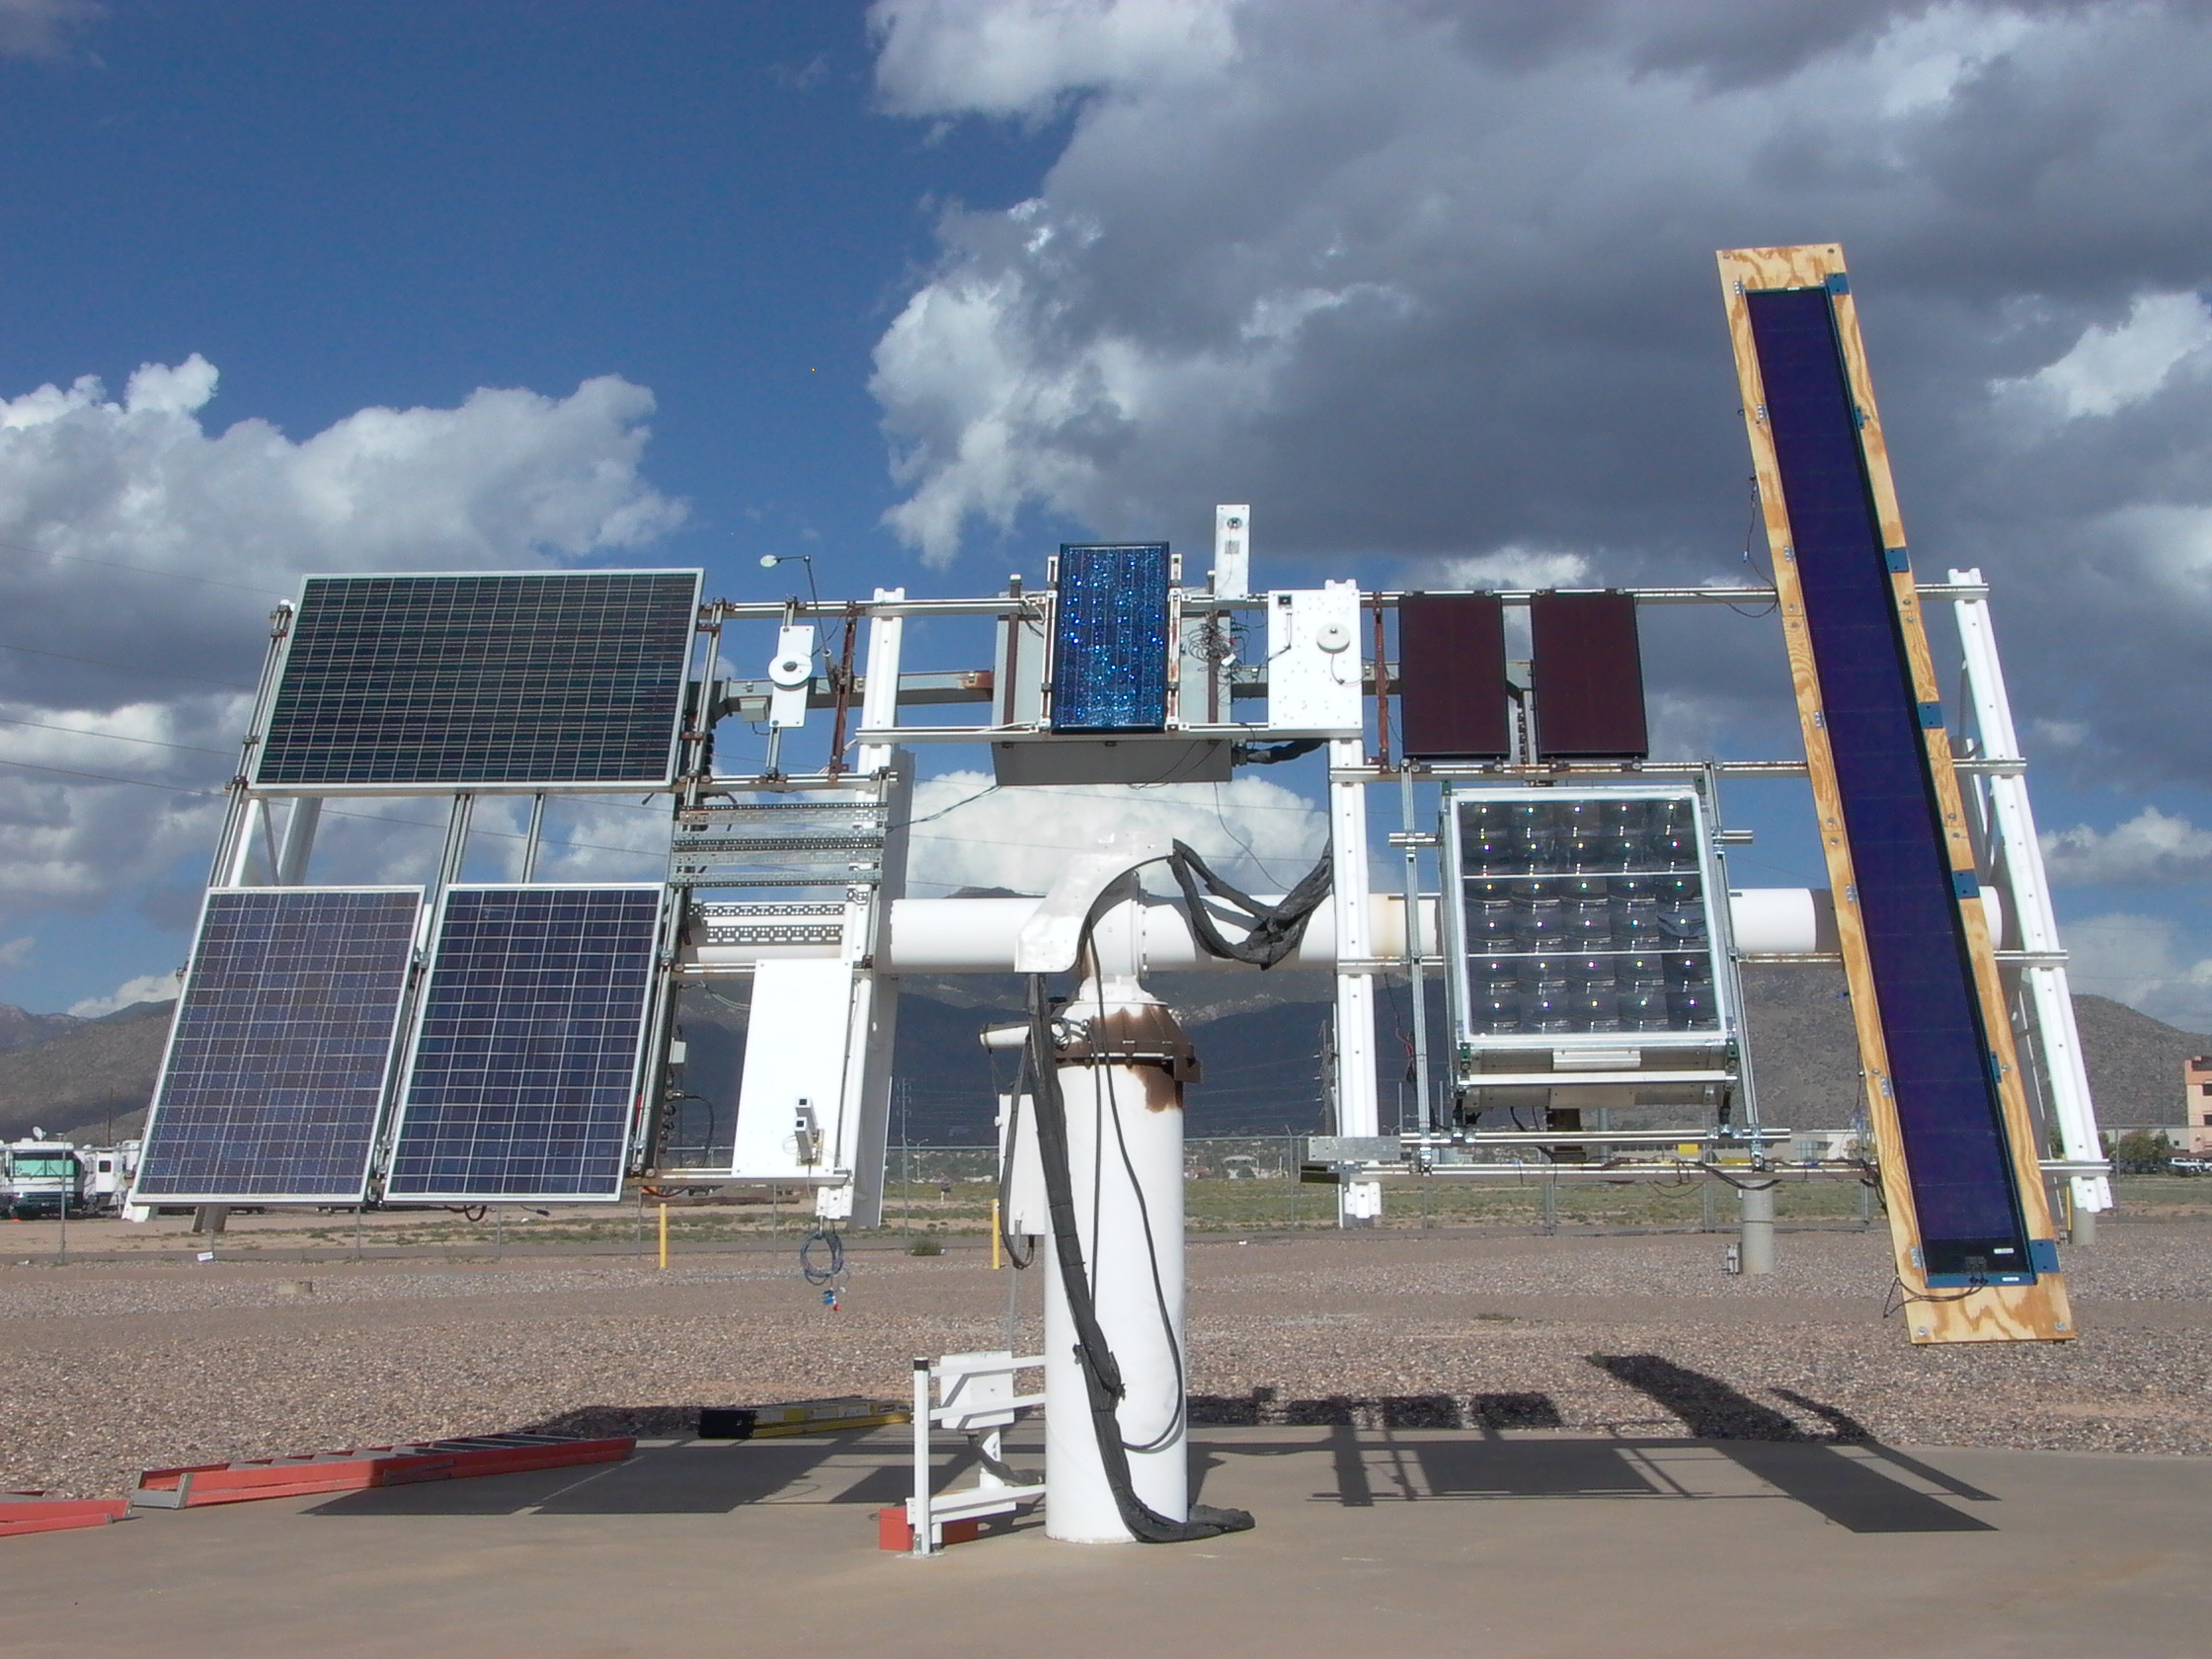 Photo of outdoor testing equipment with a variety of attached PV modules.